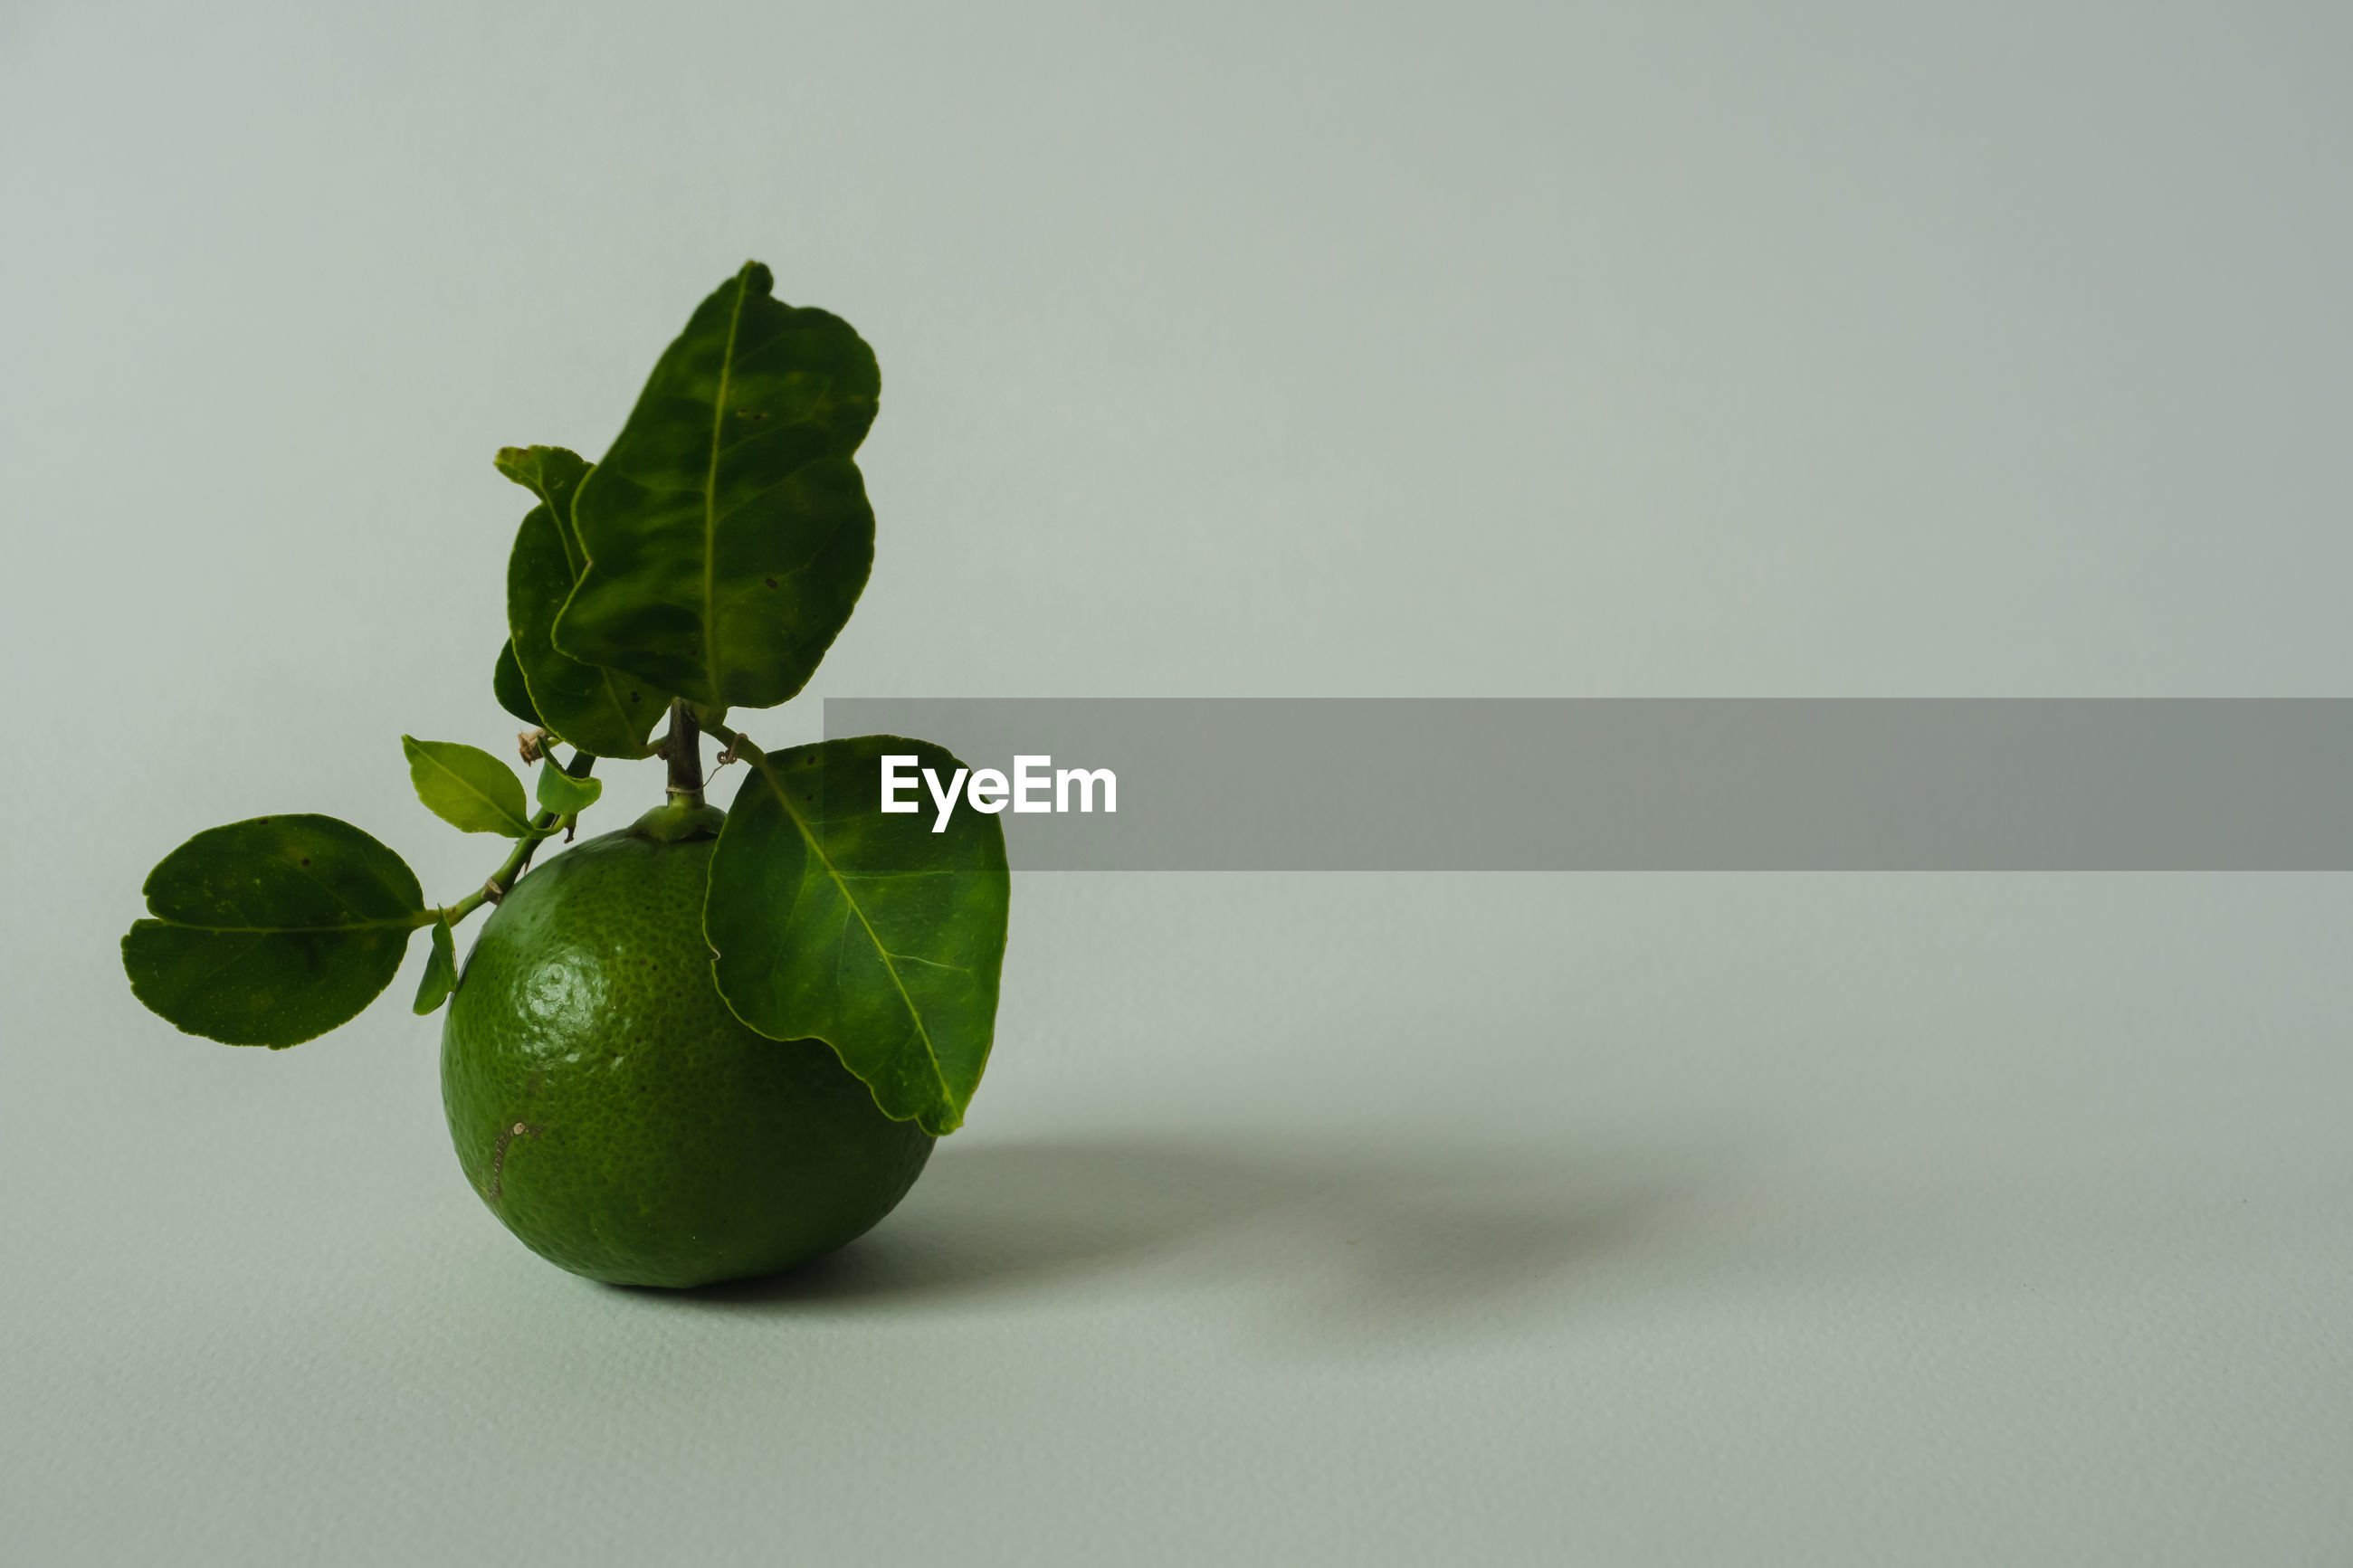 CLOSE-UP OF GREEN FRUIT ON WHITE BACKGROUND